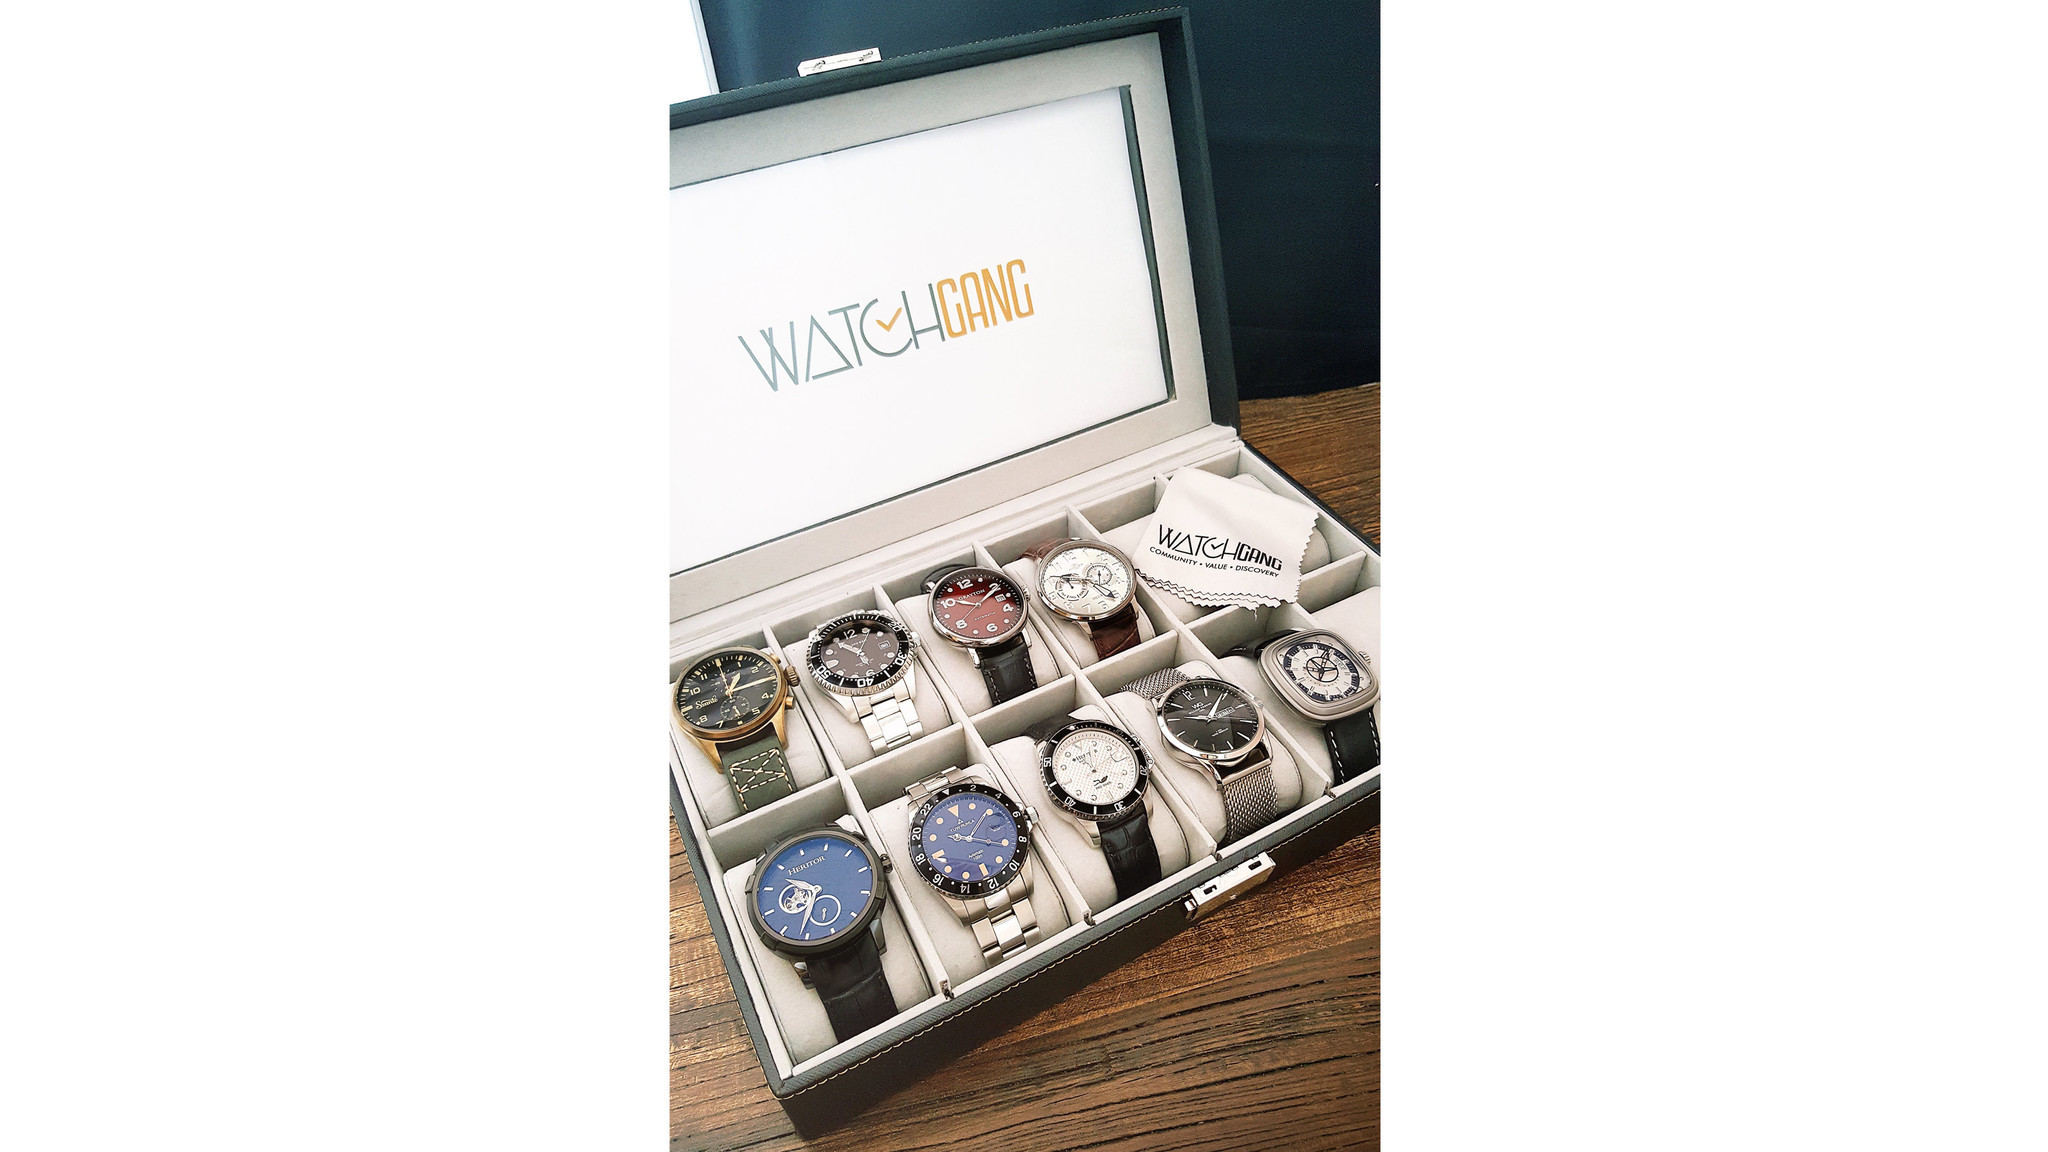 Monthly watch deliveries from Watch Gang.